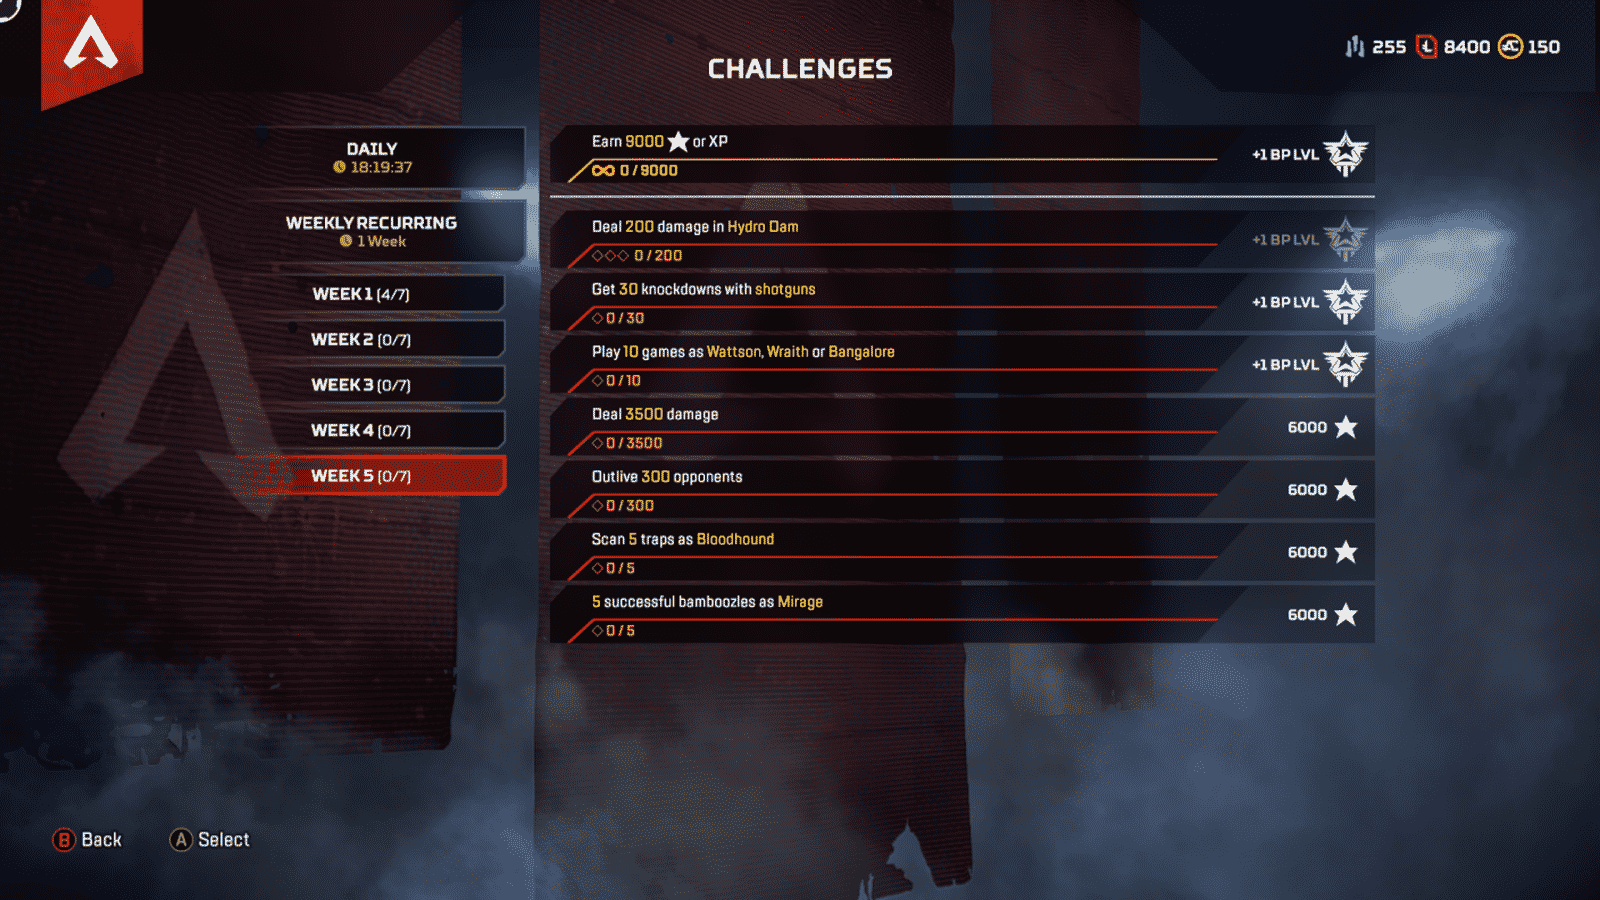 Week 5 challenges for Apex Legends